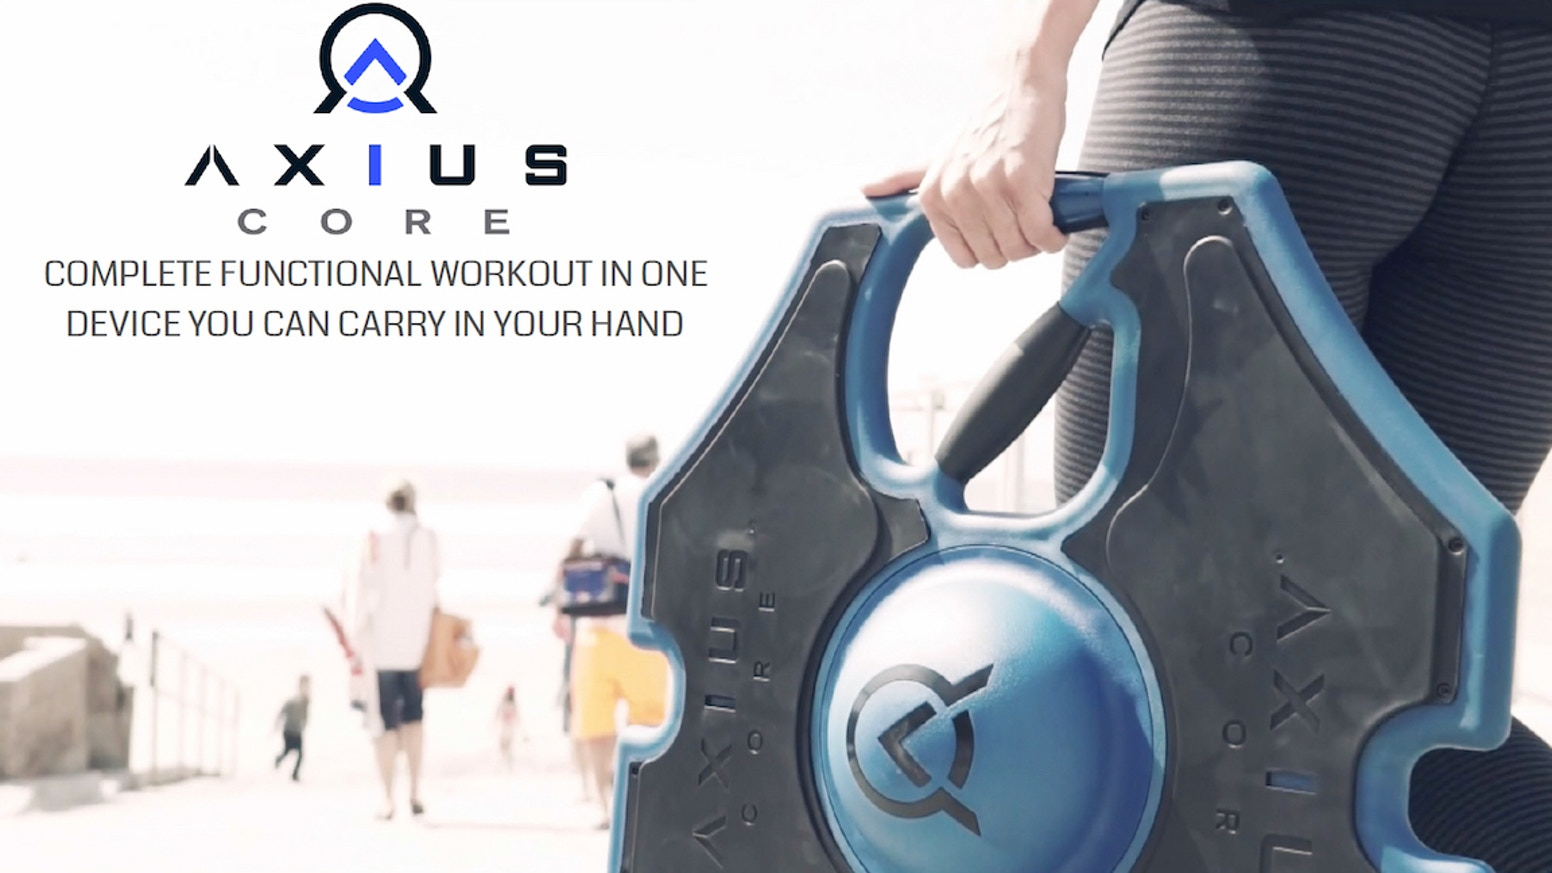 AXIUS is now live and taking orders on our website.  Click below to view our website and learn more: